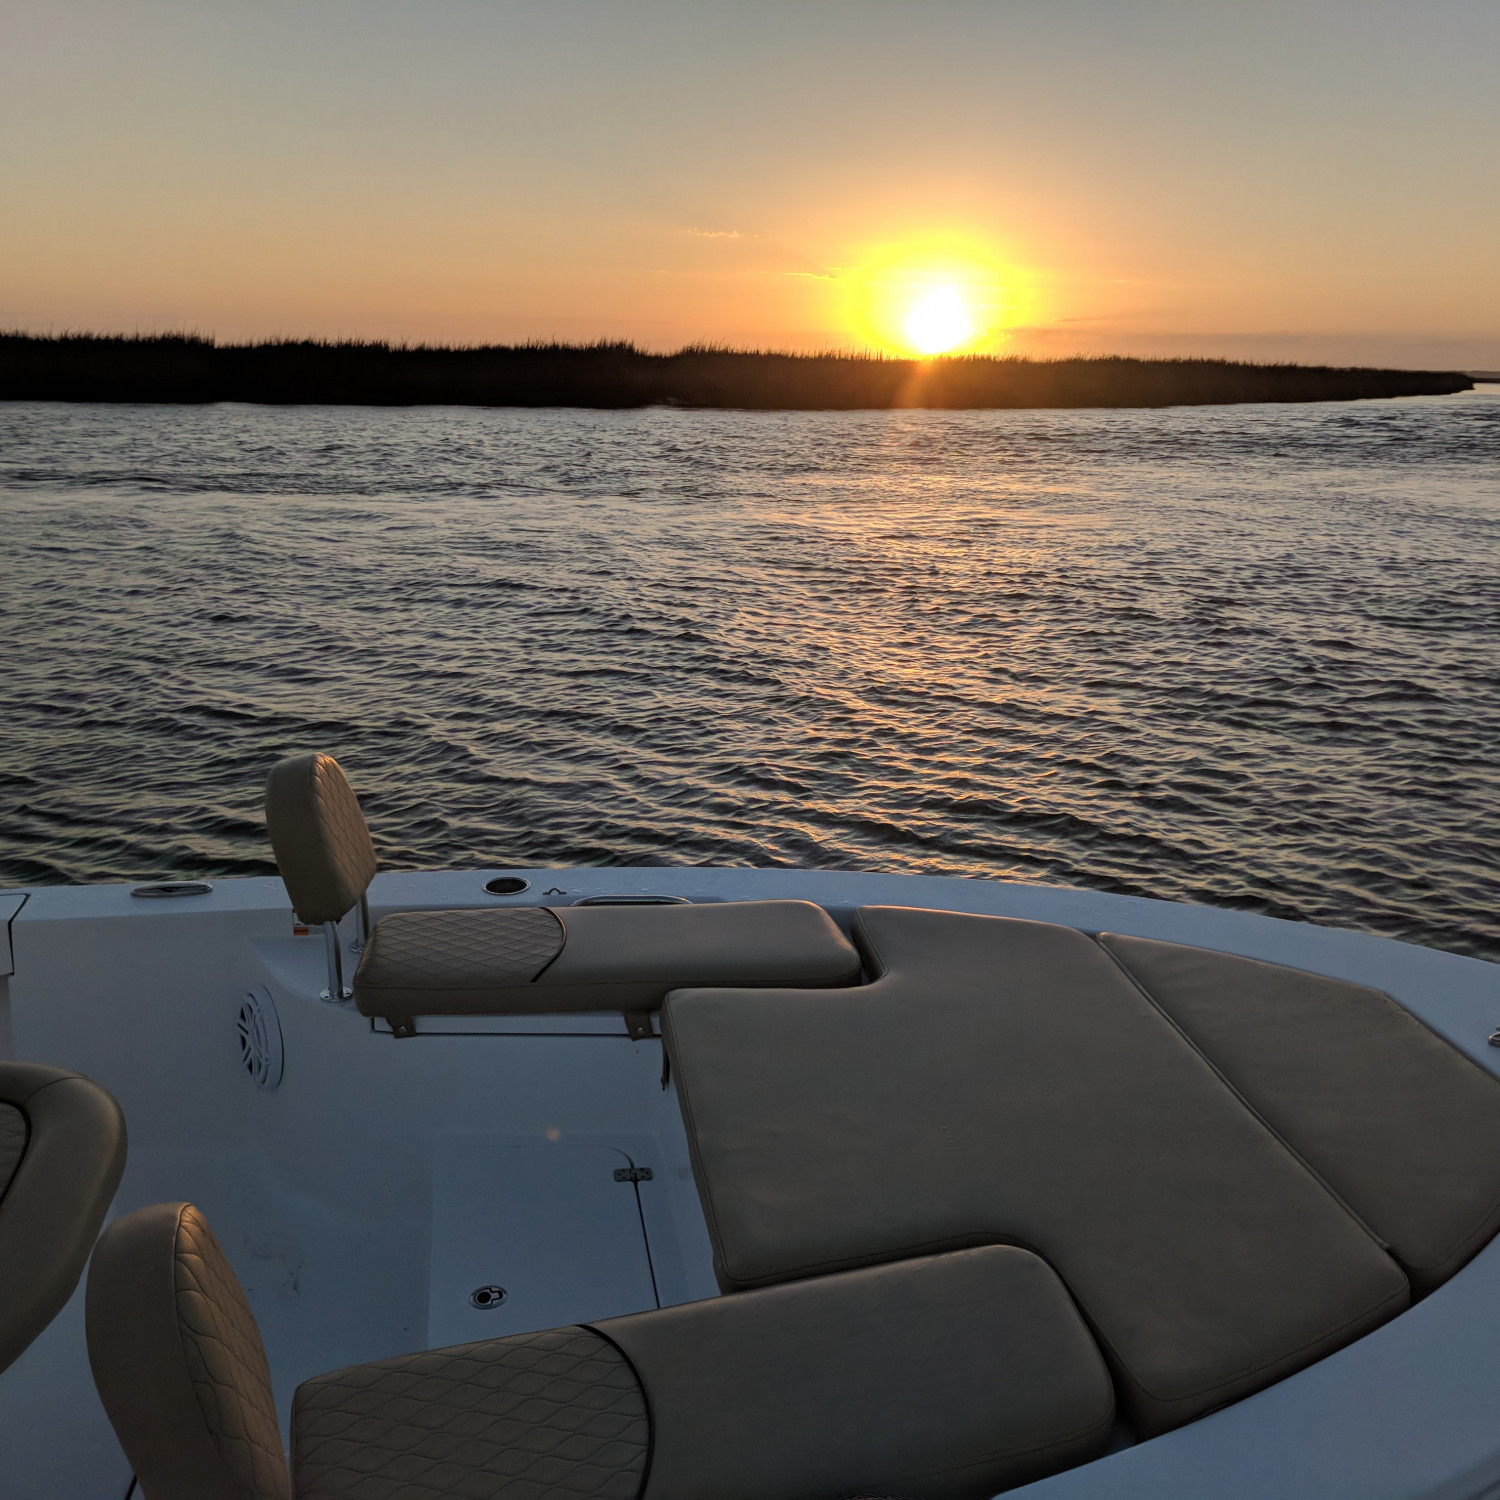 Title: Sunset after a great day. - On board their Sportsman Masters 227 Bay Boat - Location: Savannah ga. Participating in the Photo Contest #SportsmanMarch2018